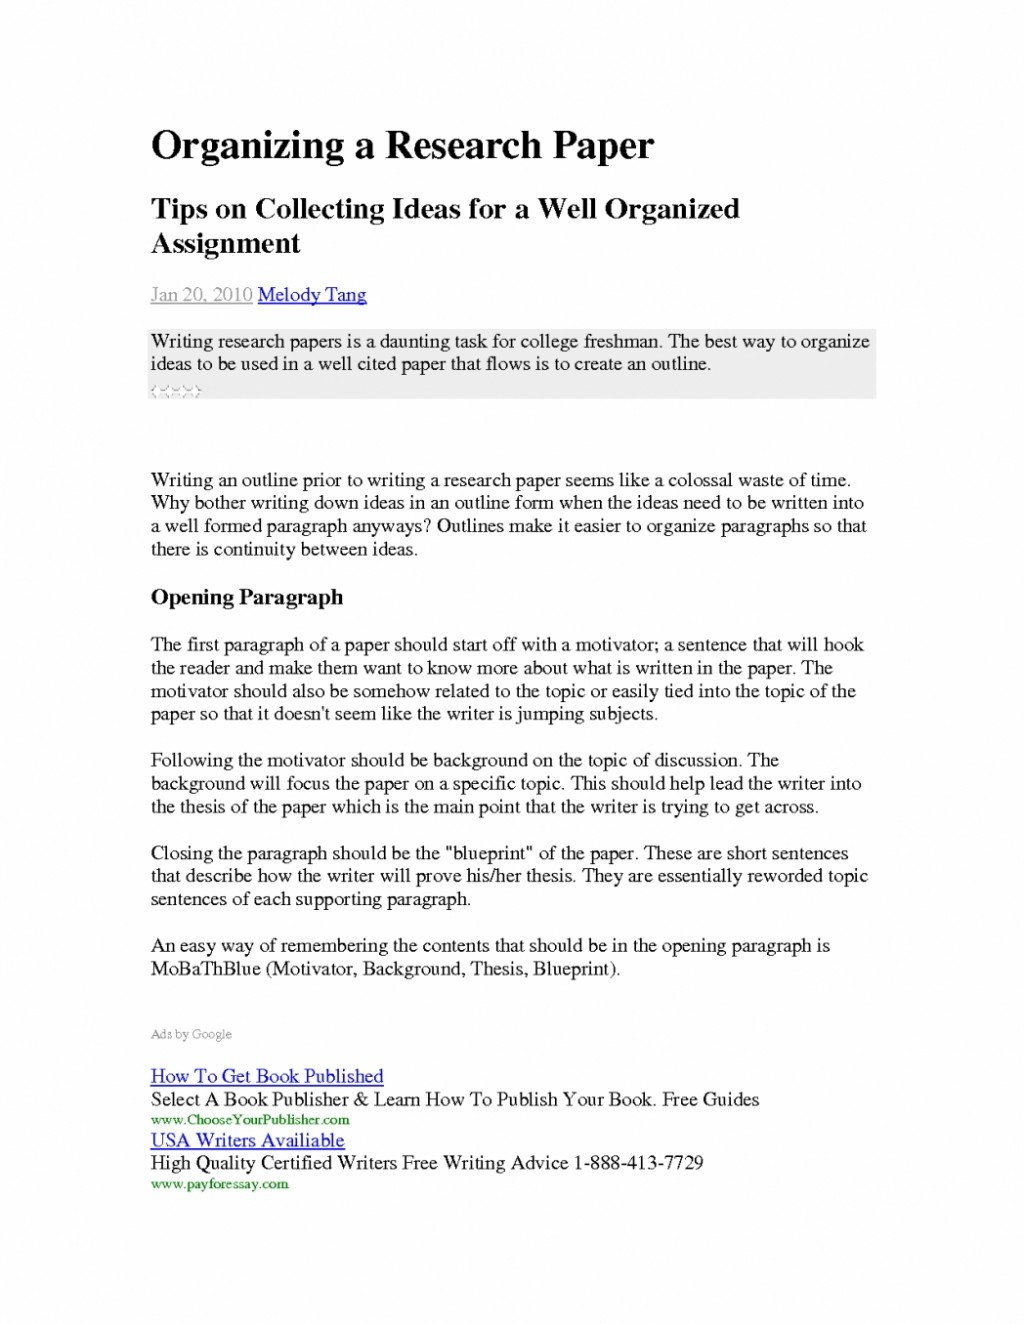 008 Research Paper How To Start Paragraph Conclusion Of Thesis Essay Beautiful Starting Pertaining Examples For Papers Stirring A New In Your Introduction On An Opening Large